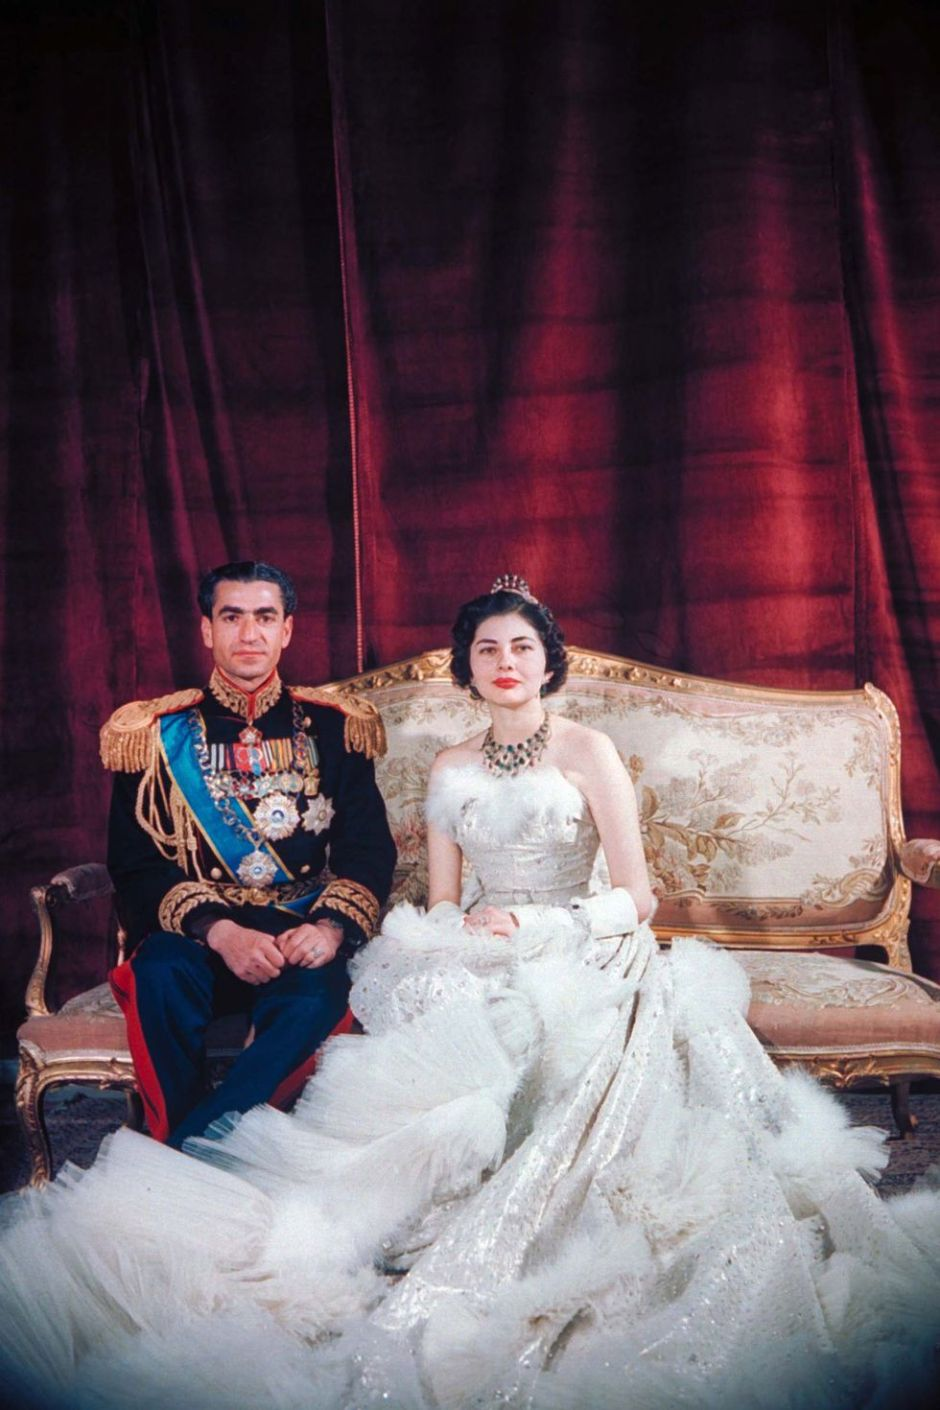 1437673873-hbz-royal-weddings-1951-shah-mohamed-reza-pahlevi-queen-soraya-iran-gettyimages-50595286